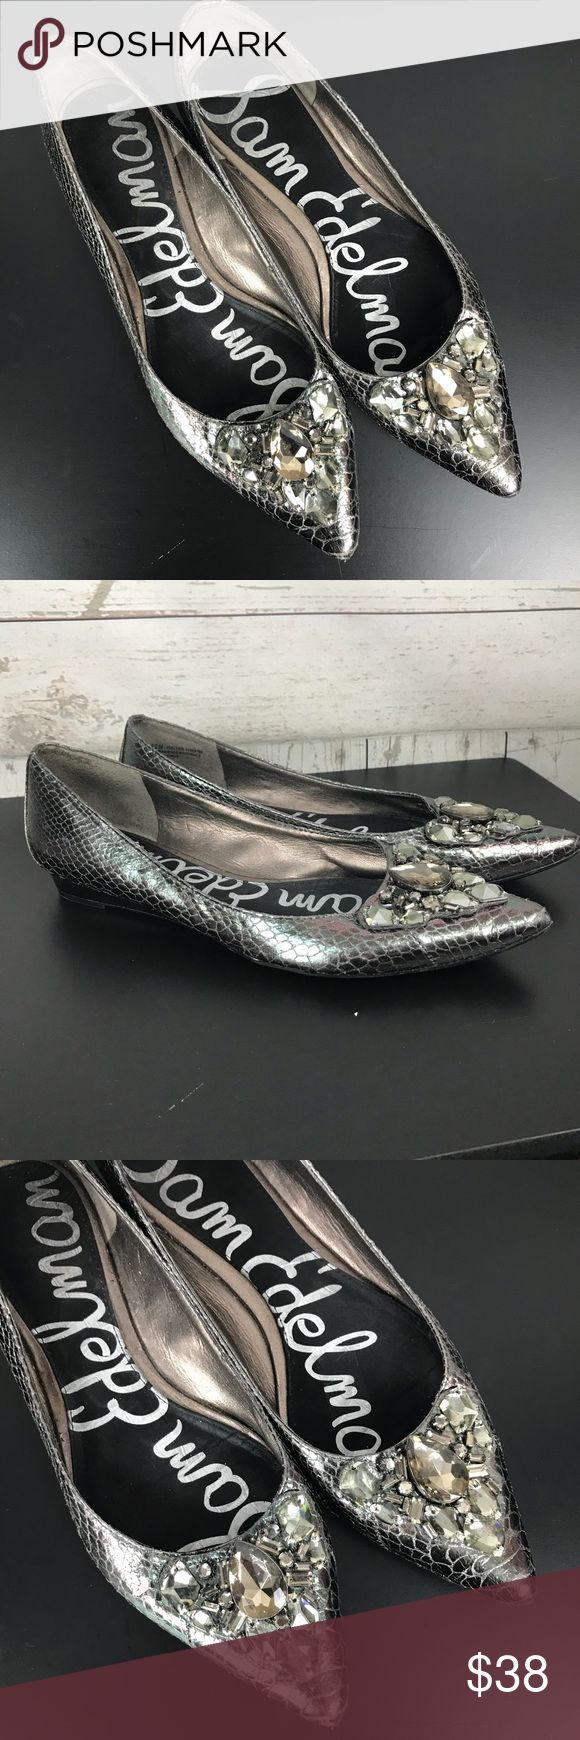 Sam Edelman Silver Jewel Flats ICELYNN 8.5 Same Edleman slip on iridescent silverballet flats. Pointy toe with lots of jewels. Silver heel. Gentlyused condition,small chipin the silver on the heel, not very noticable. Comfy! I really want tokeep them, but I wear a size 9 and they are just a little too small.  Size: 8.5 Heel Height: Flat Platform Height: N/A SB1 Sam Edelman Shoes Flats & Loafers